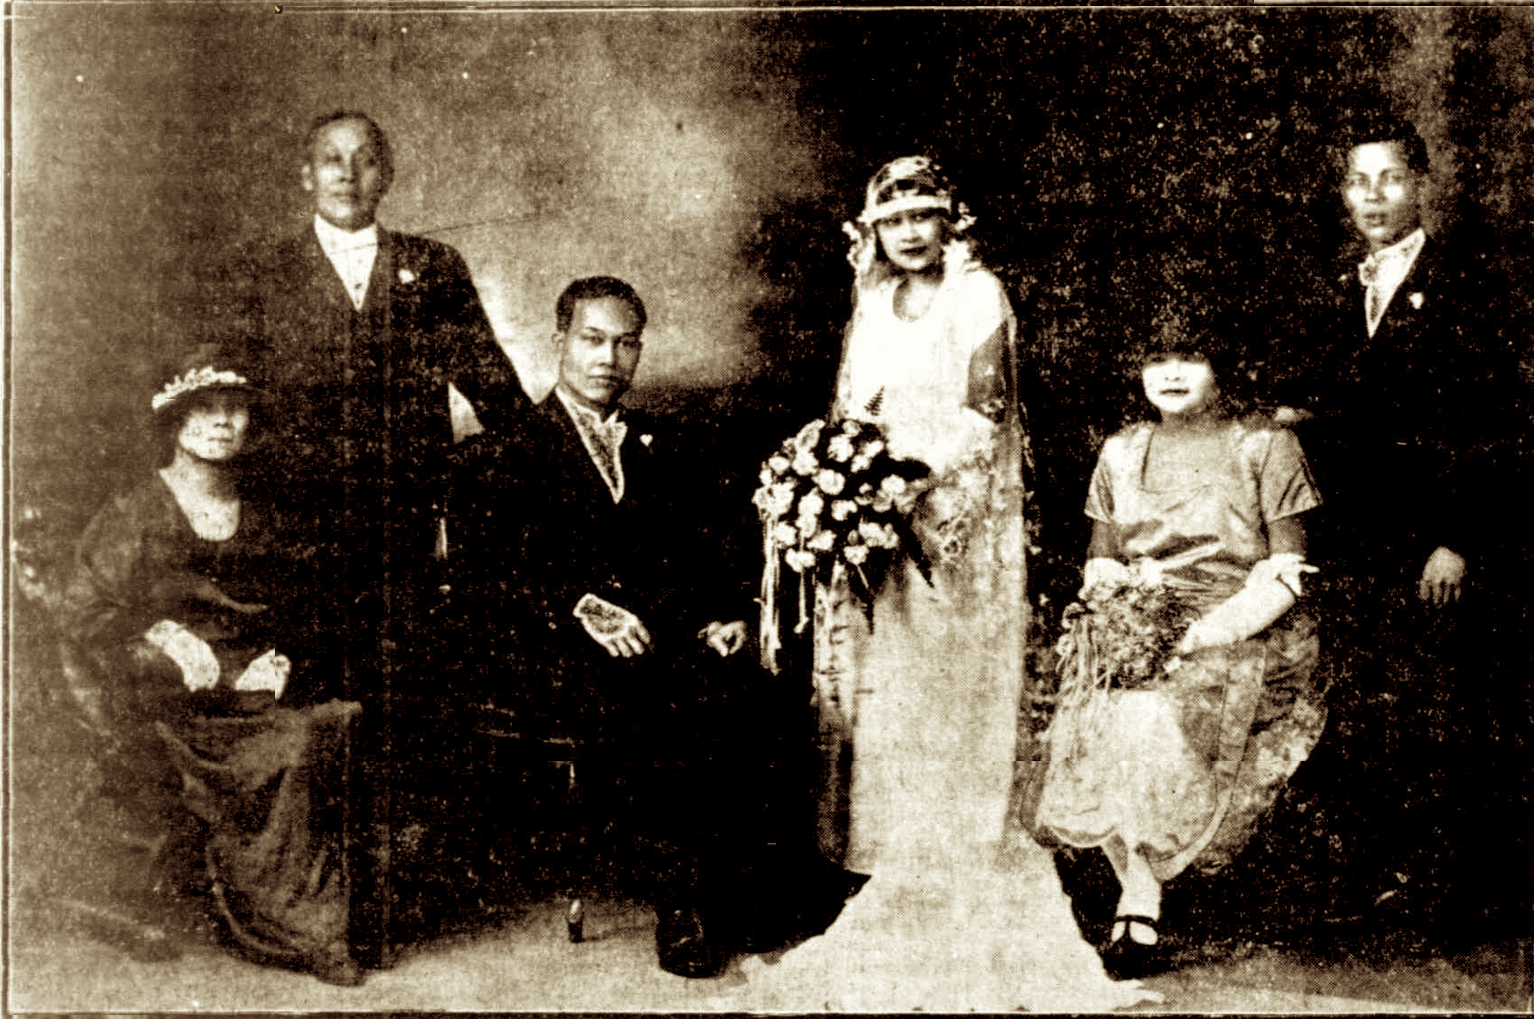 Mirror, 25 July 1925: The wedding of Leong Yen and Ruby Lee Wood, June 1924. Ruby's parents are on the left; her unmarried sister Dolly, on her right.